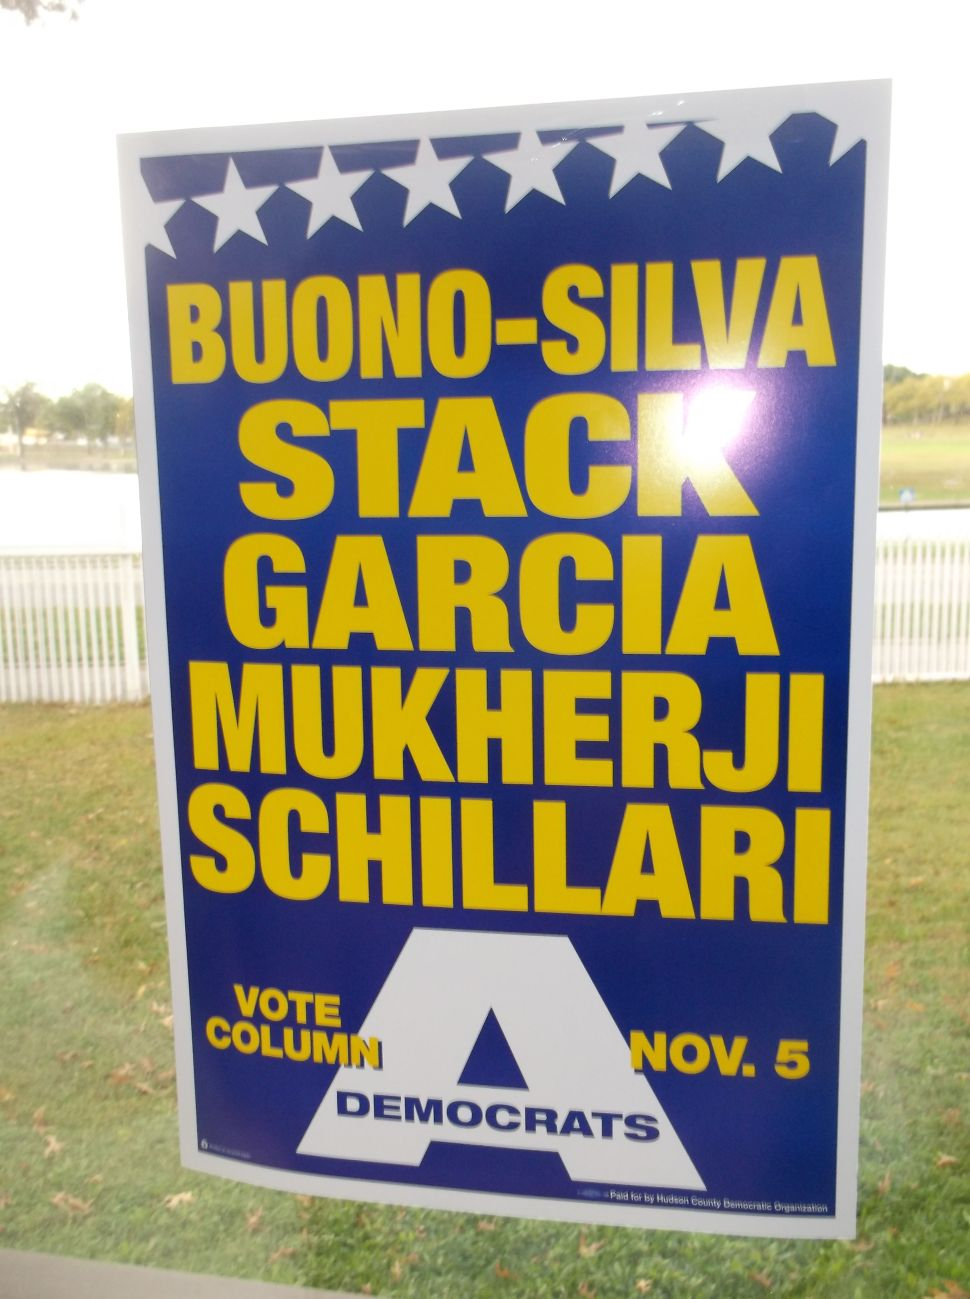 The Buono-Stack ticket